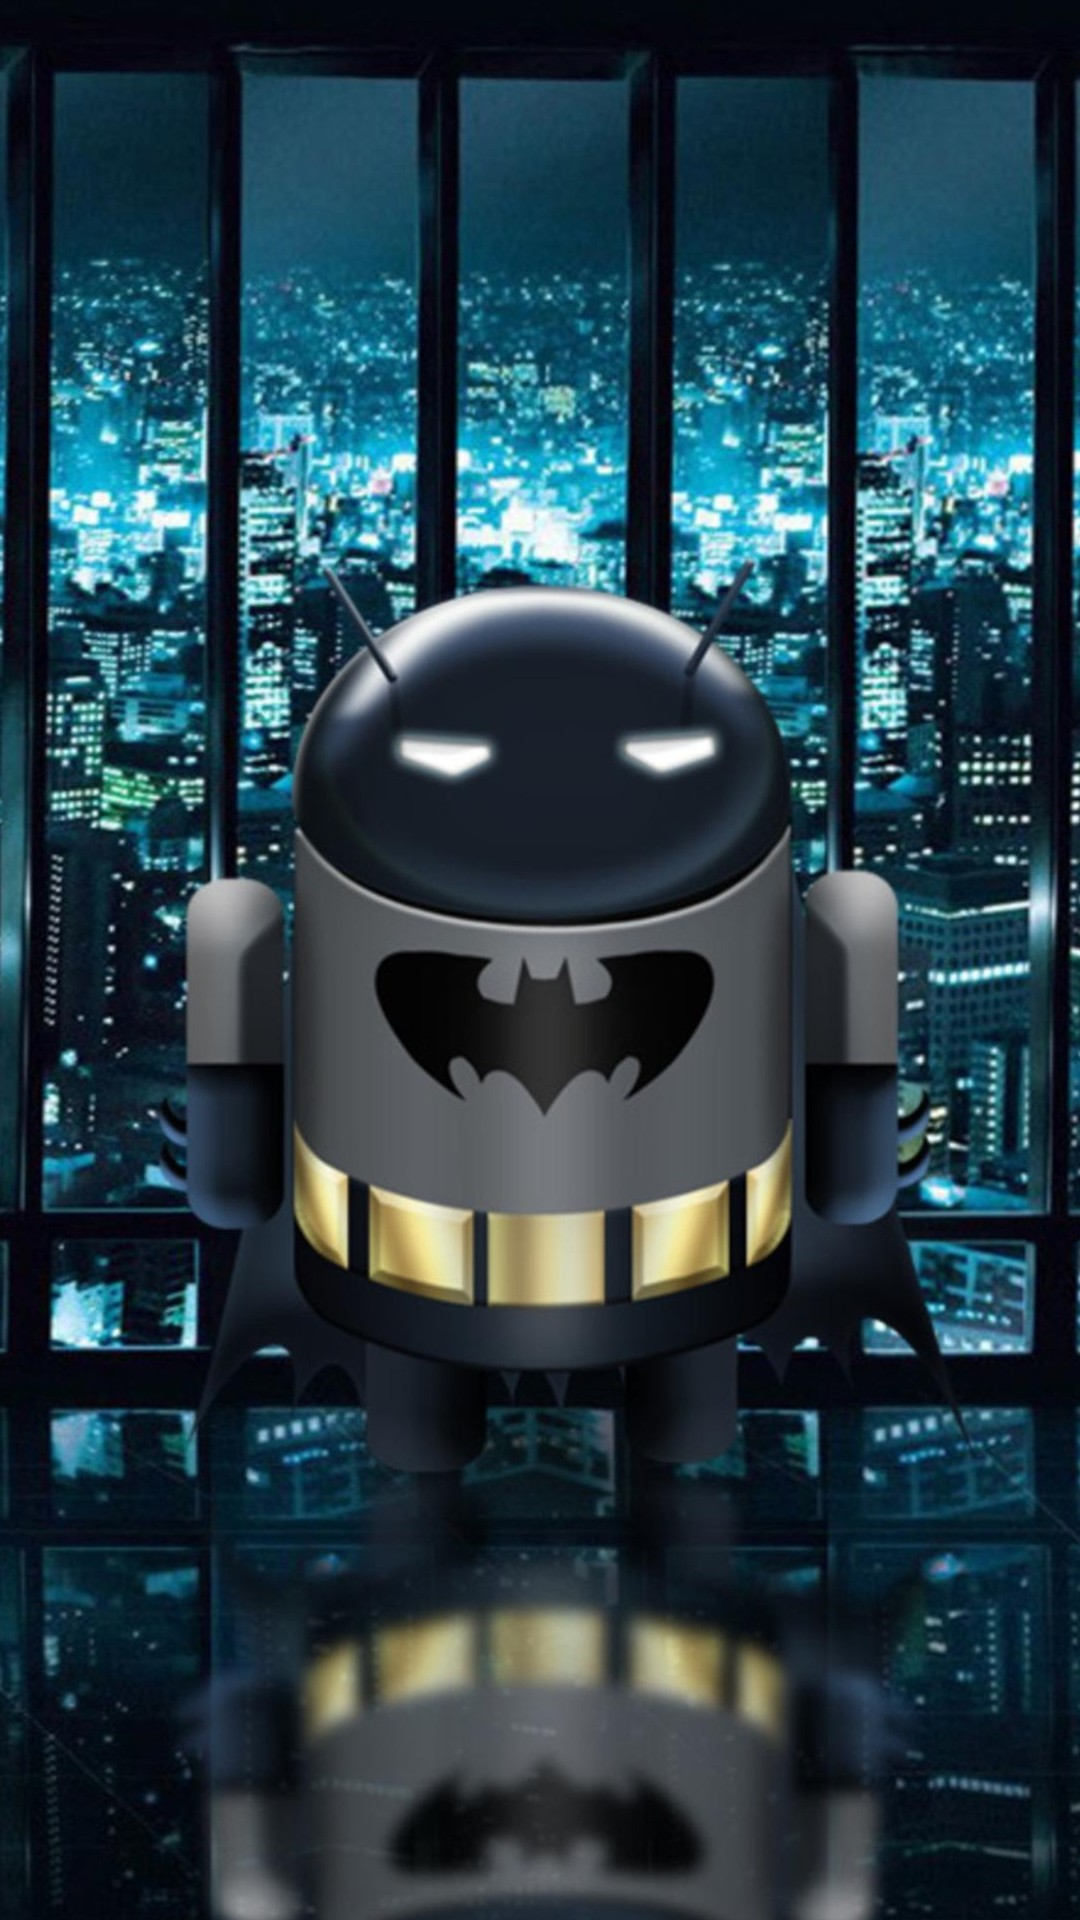 batman android mobile phone hd wallpaper 1080x1920 1080x1920